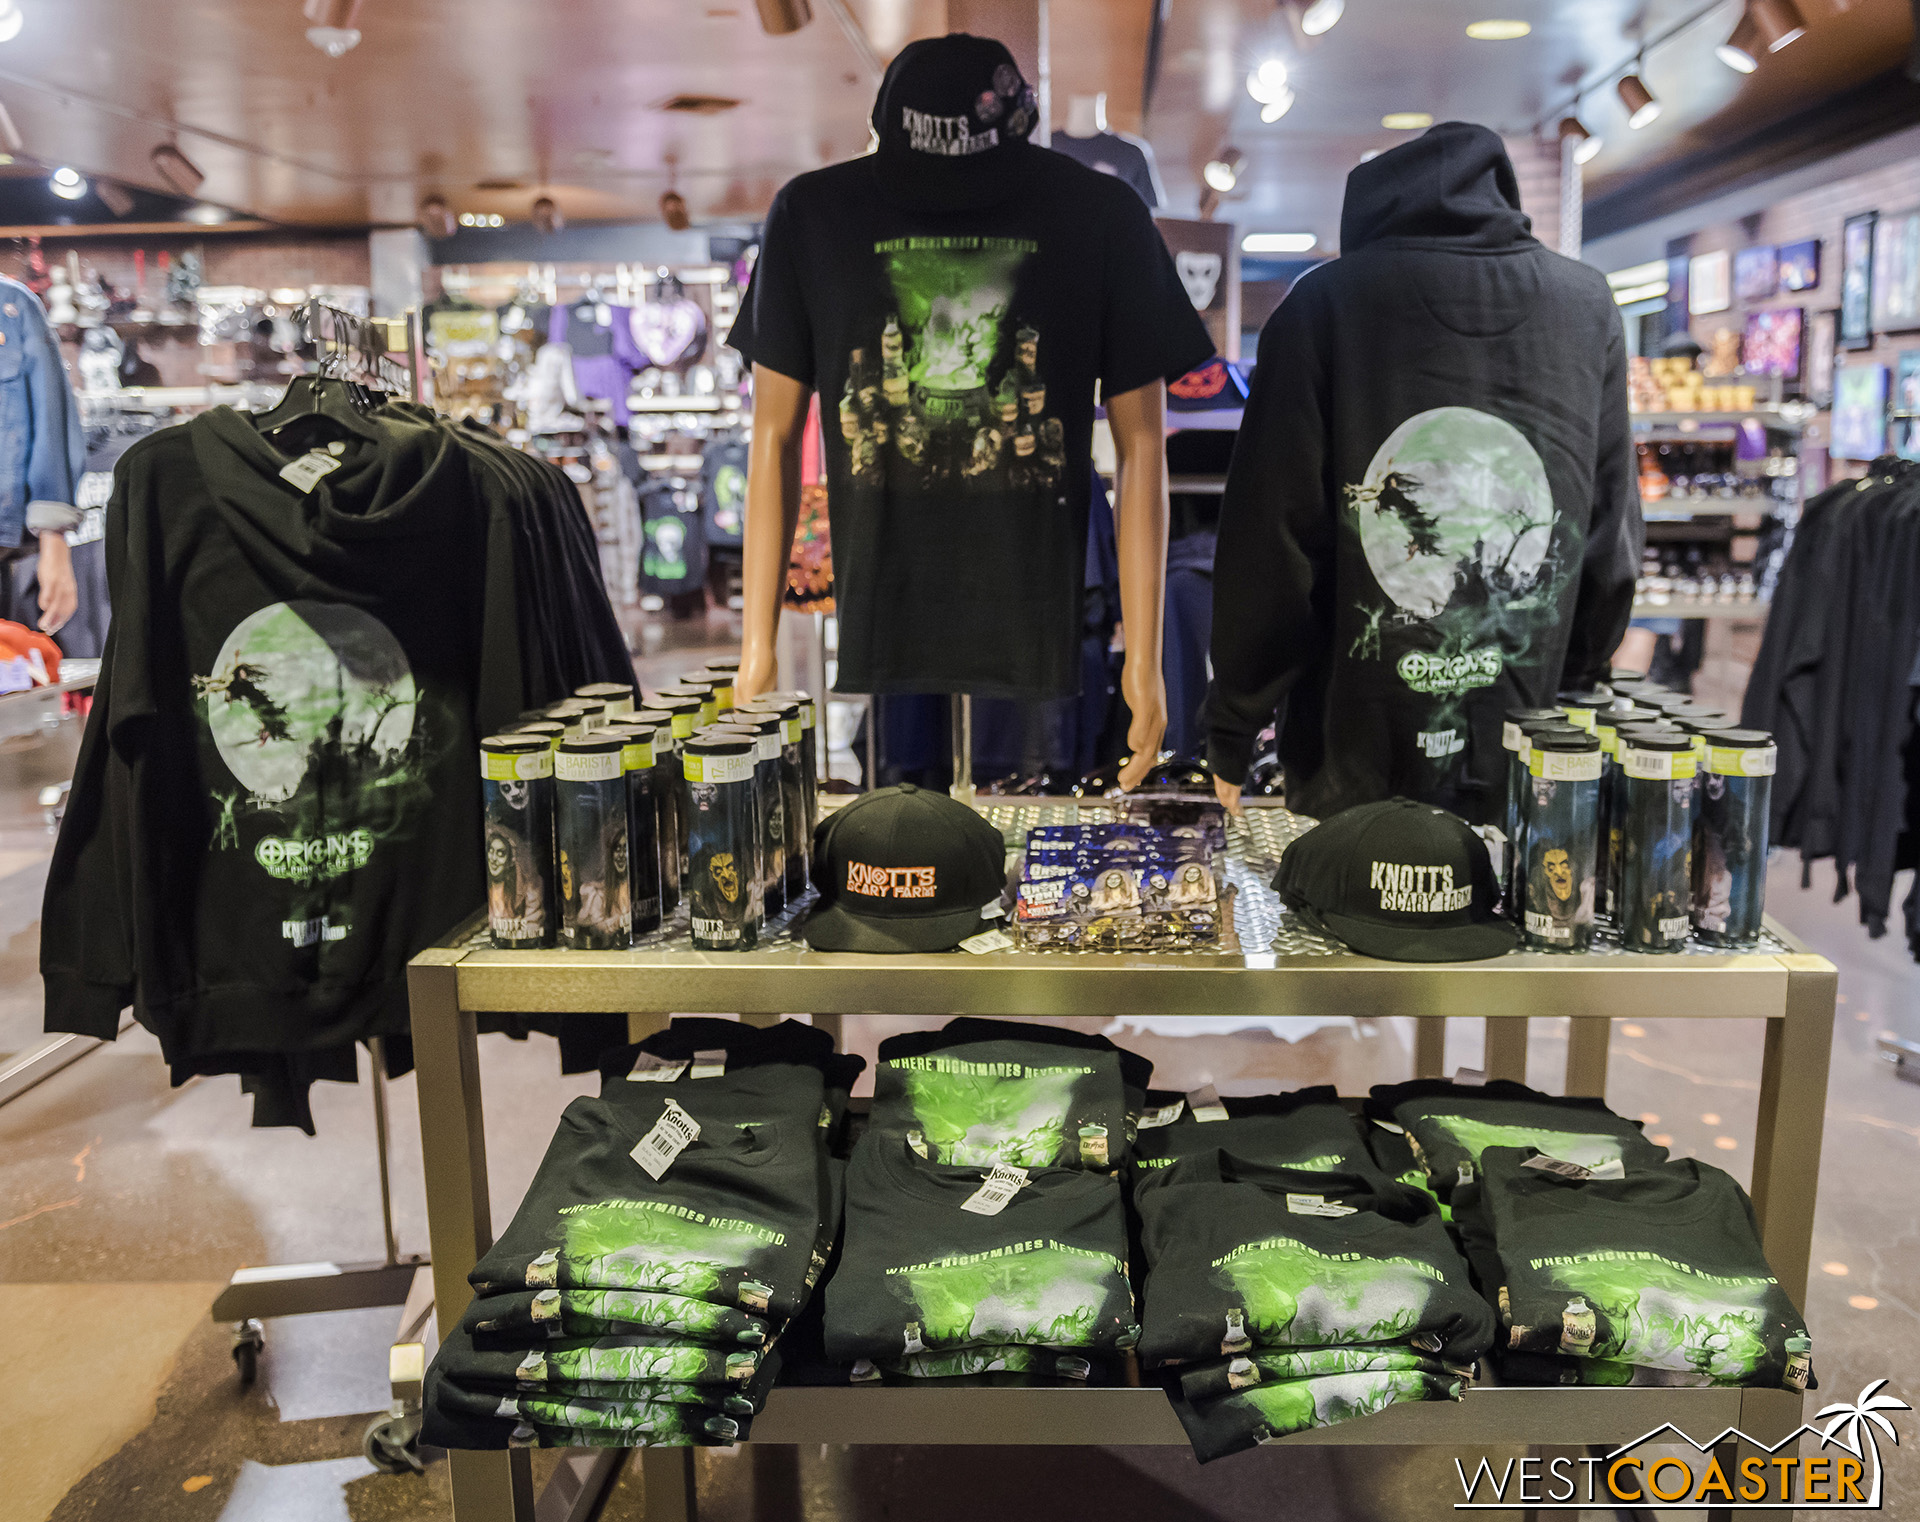 Check out the Scary Farm merch!